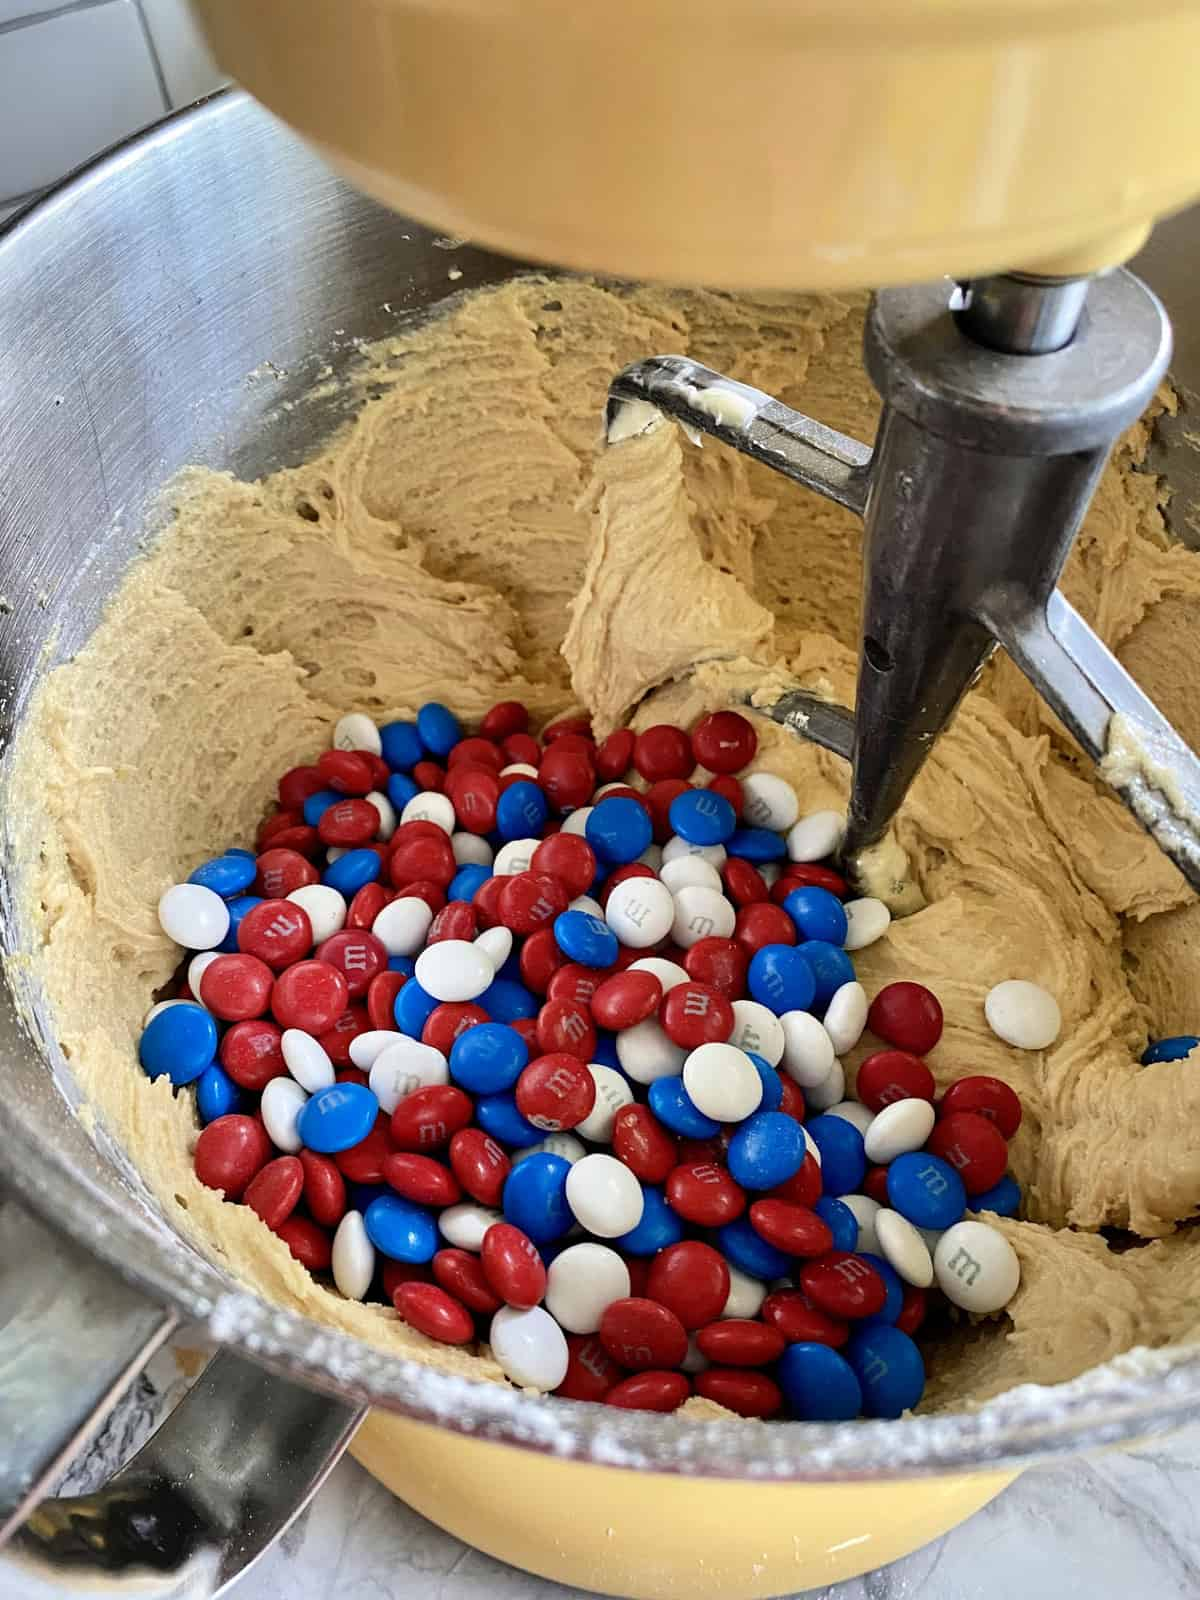 Red, white, and blue M&M's on tot of cookie dough  in a stand mixer.